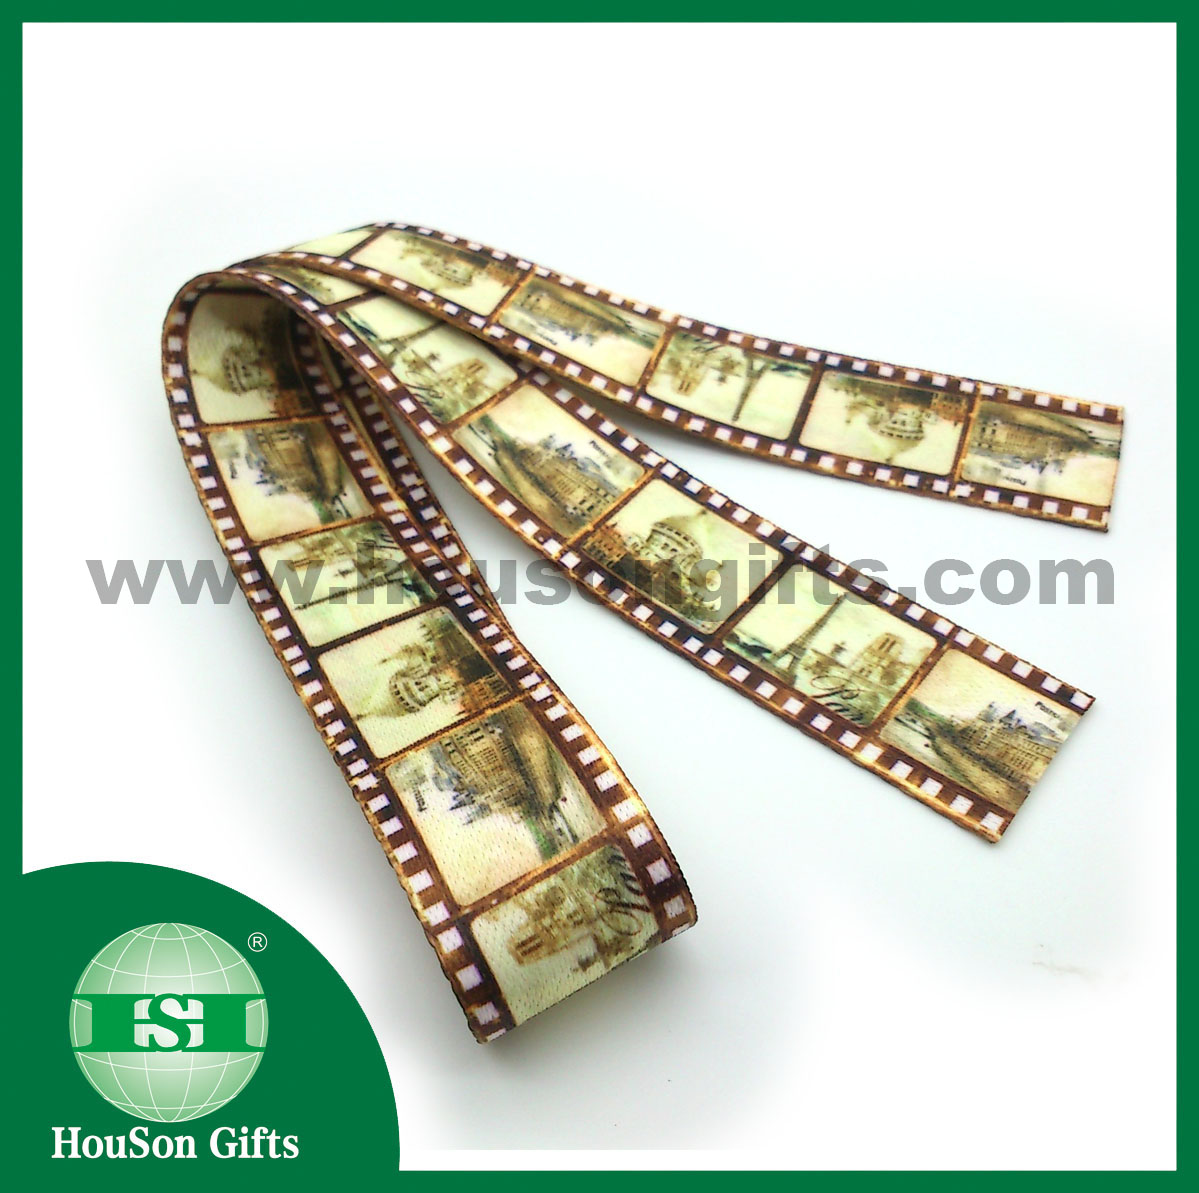 Heat transfer printed camera strap